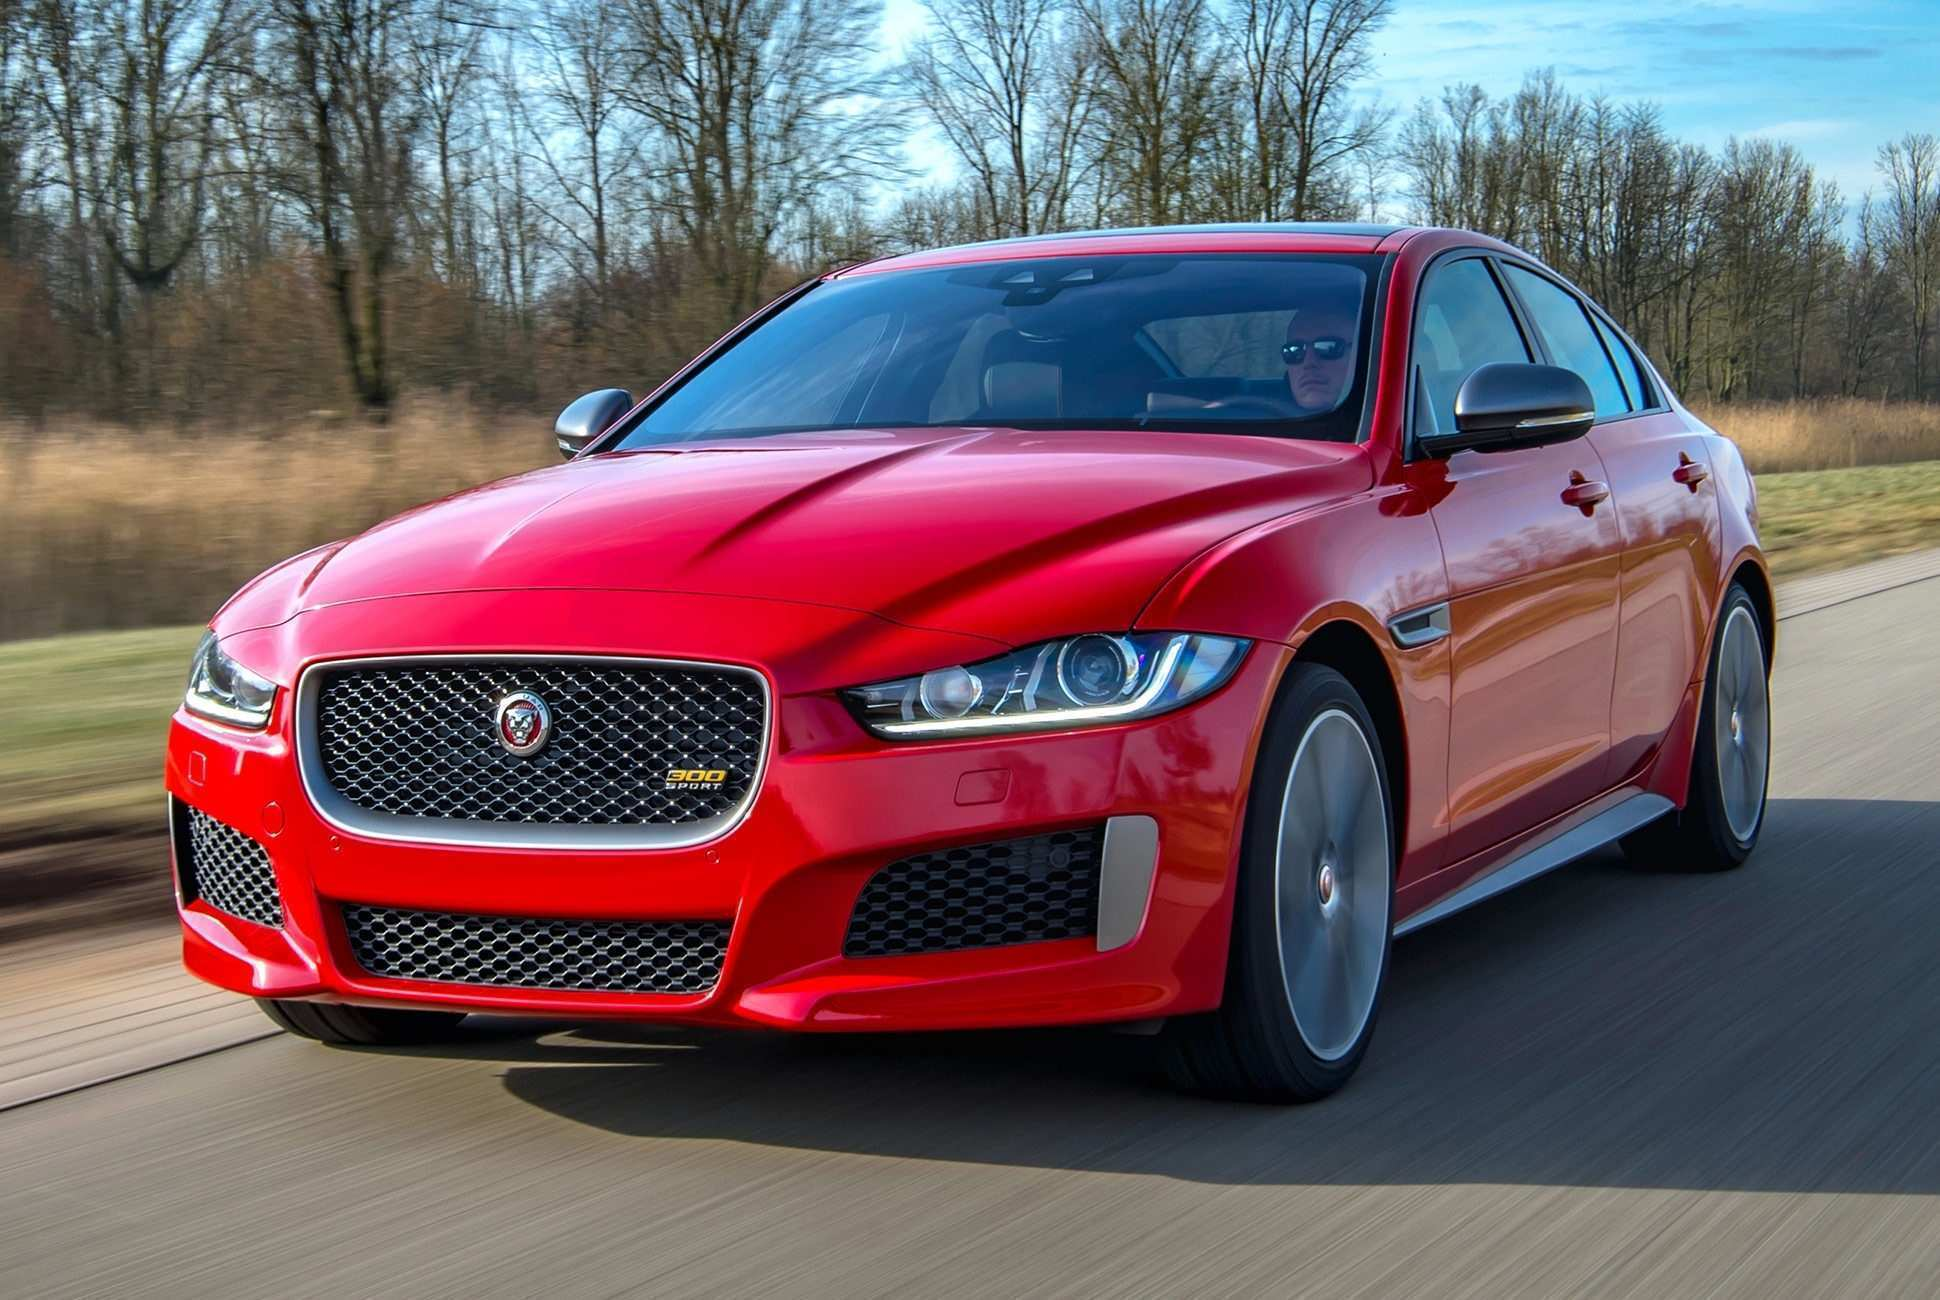 46 All New 2019 Jaguar Xe Release Date Performance and New Engine for 2019 Jaguar Xe Release Date